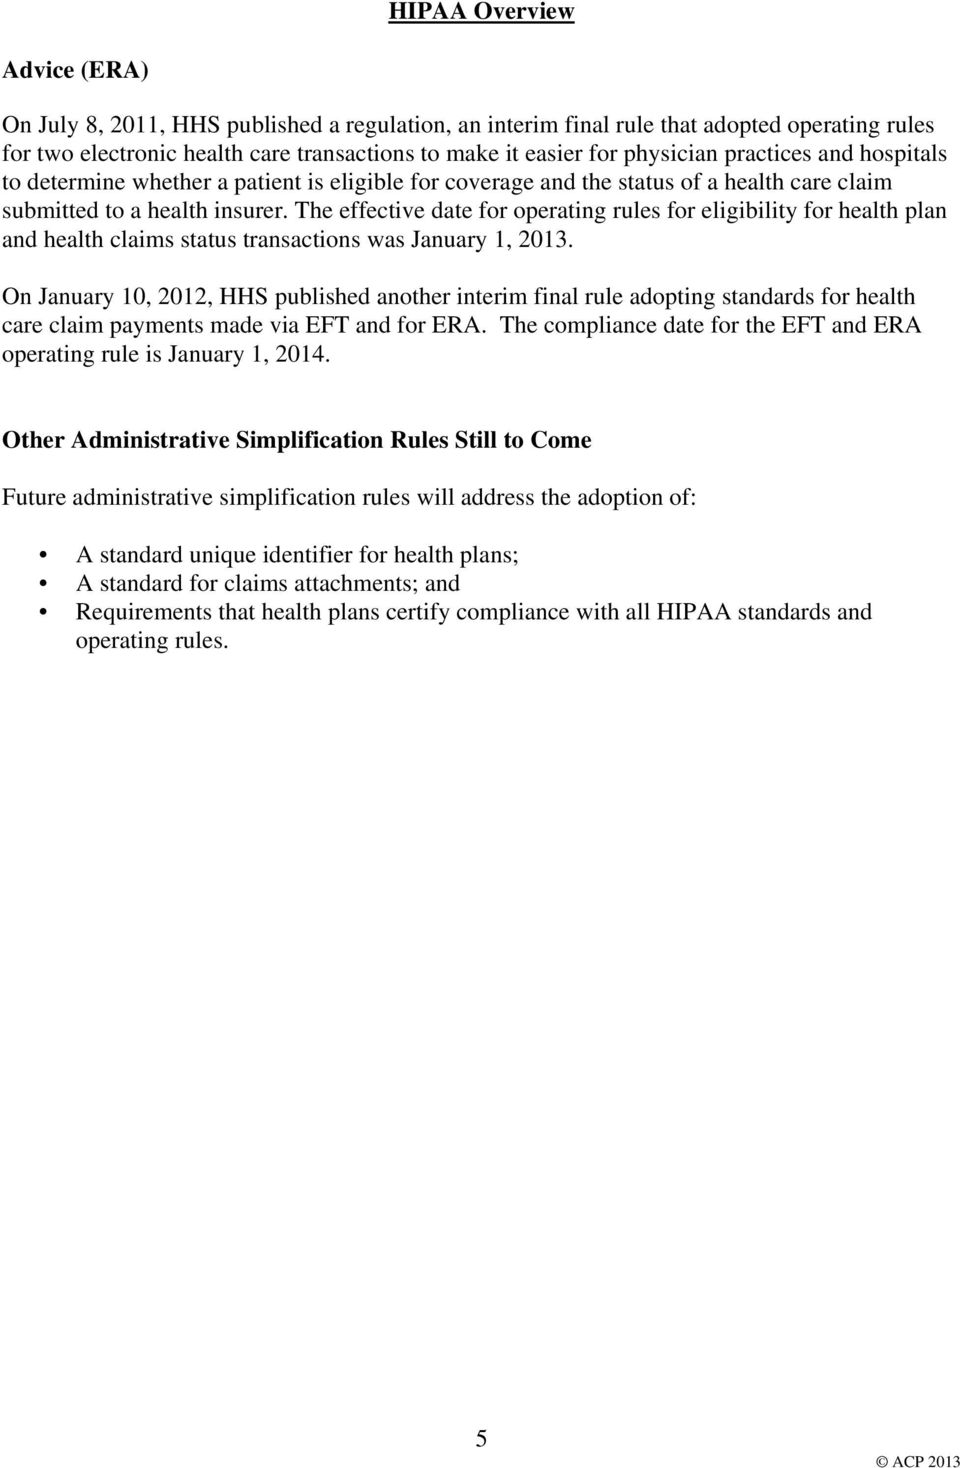 The effective date for operating rules for eligibility for health plan and health claims status transactions was January 1, 2013.